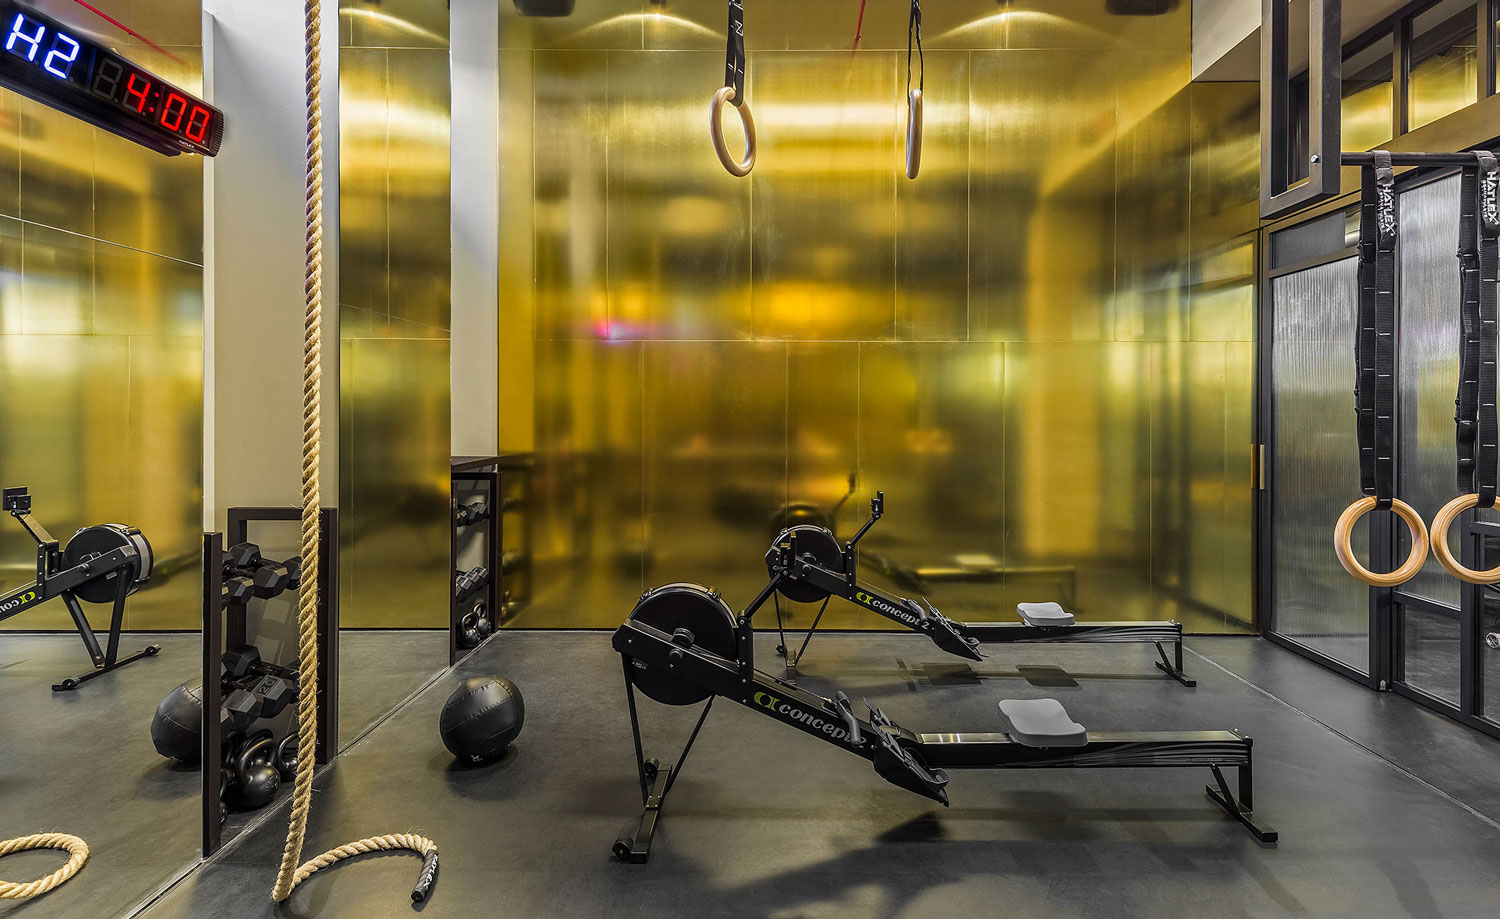 Milantrace2017 CERESIO 7 Gym and Spa by Dsquared2 | Yellowtrace